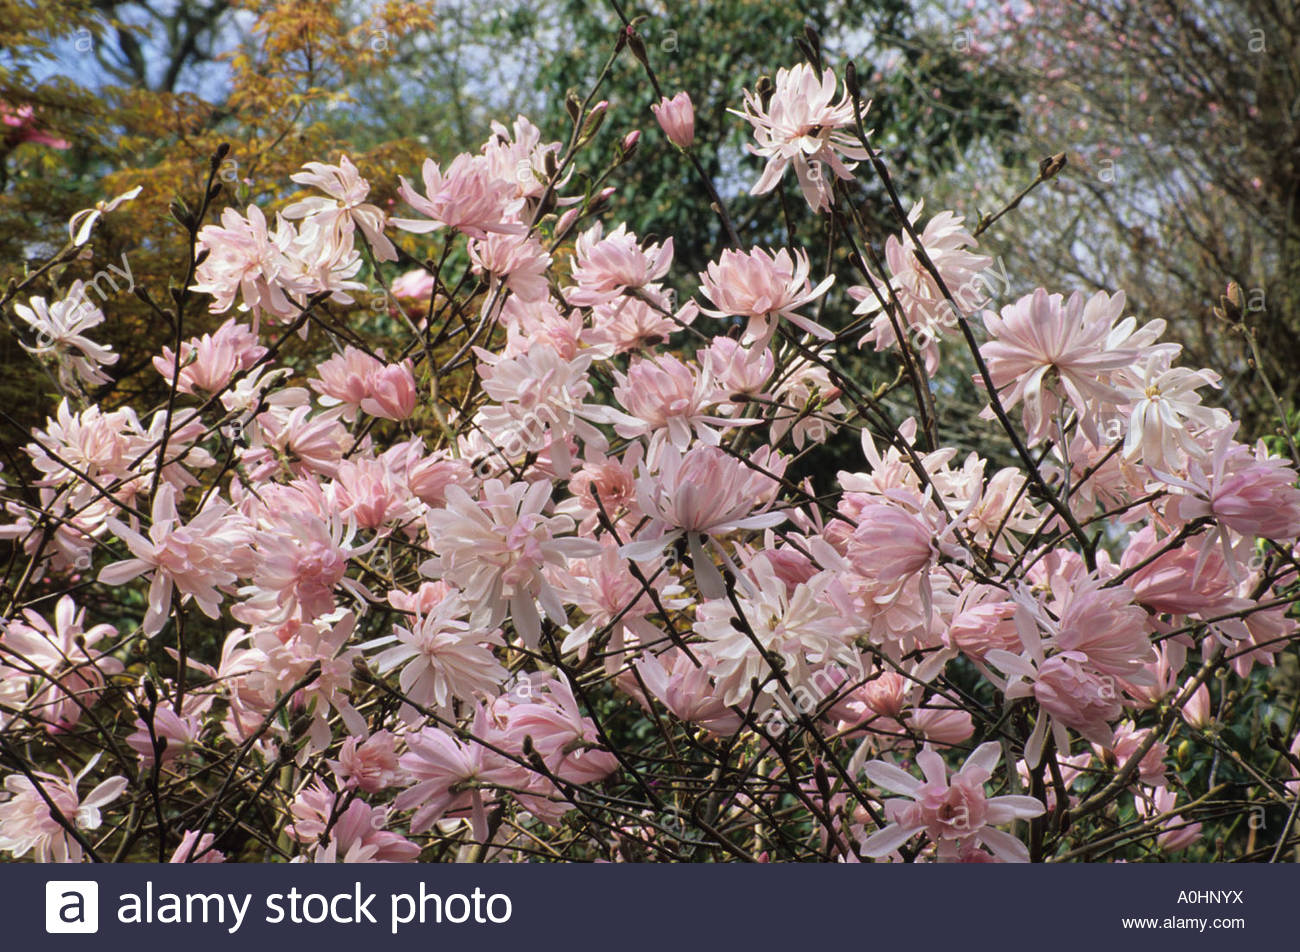 rhs wilsey surrey magnolia stellata rosea stock photo. Black Bedroom Furniture Sets. Home Design Ideas